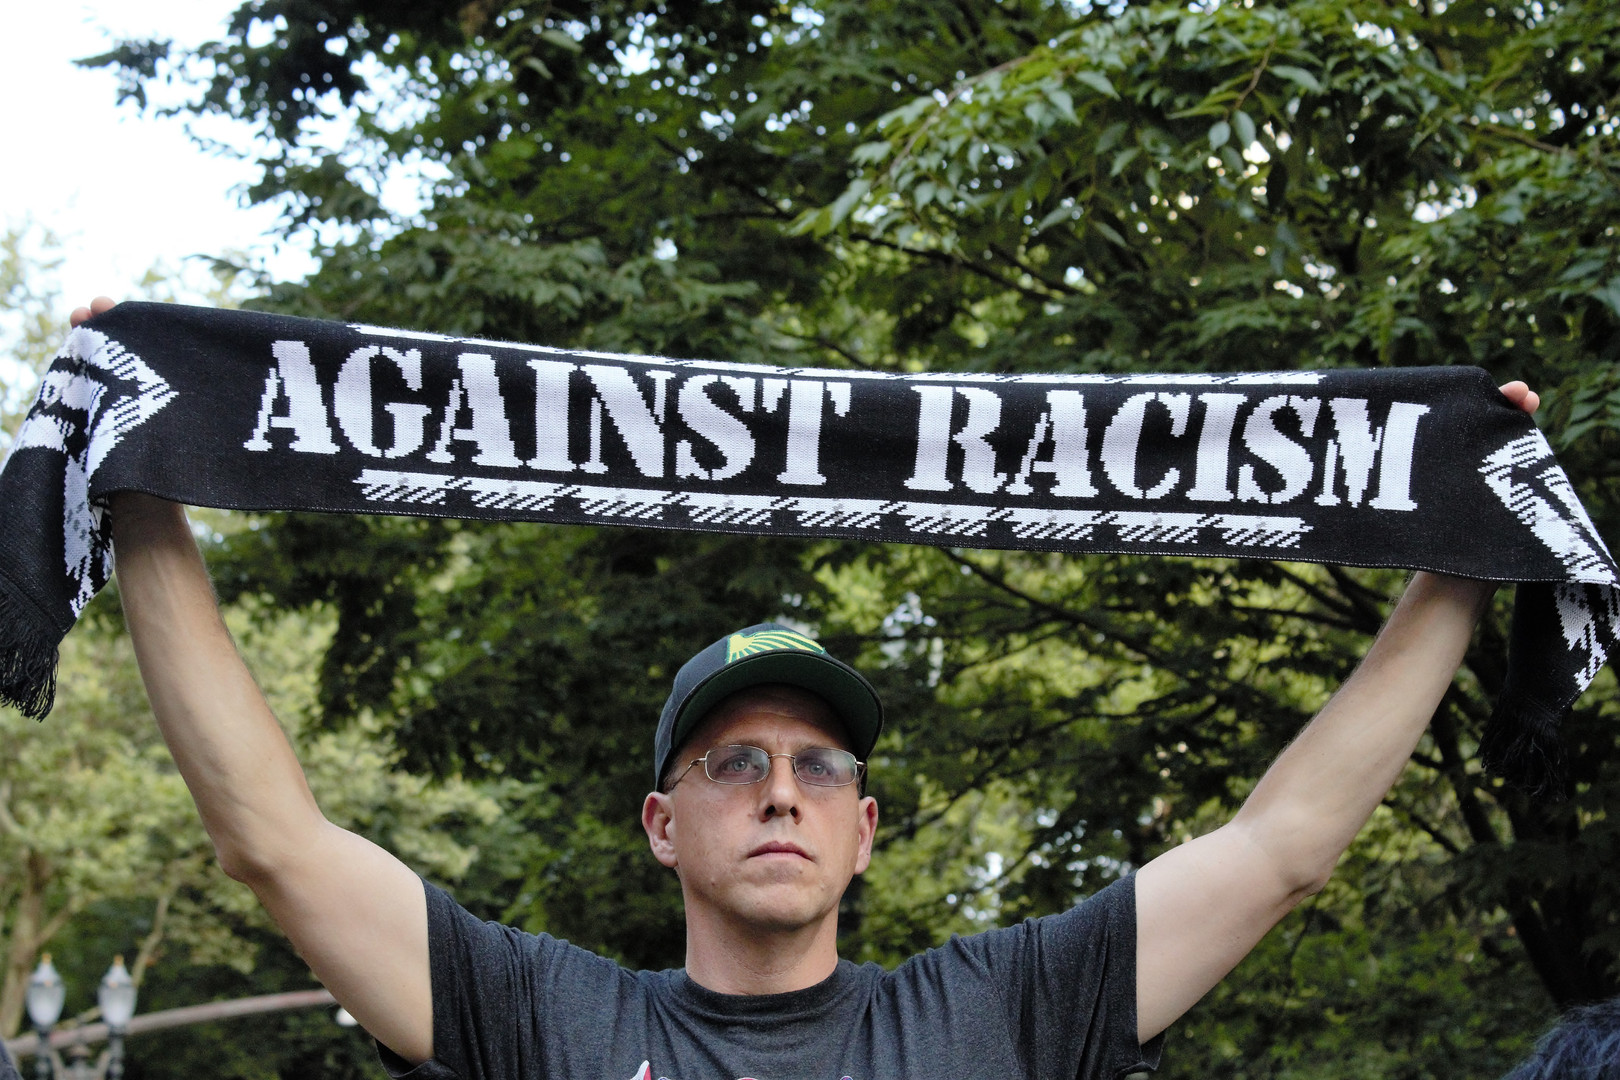 Be Against Racism